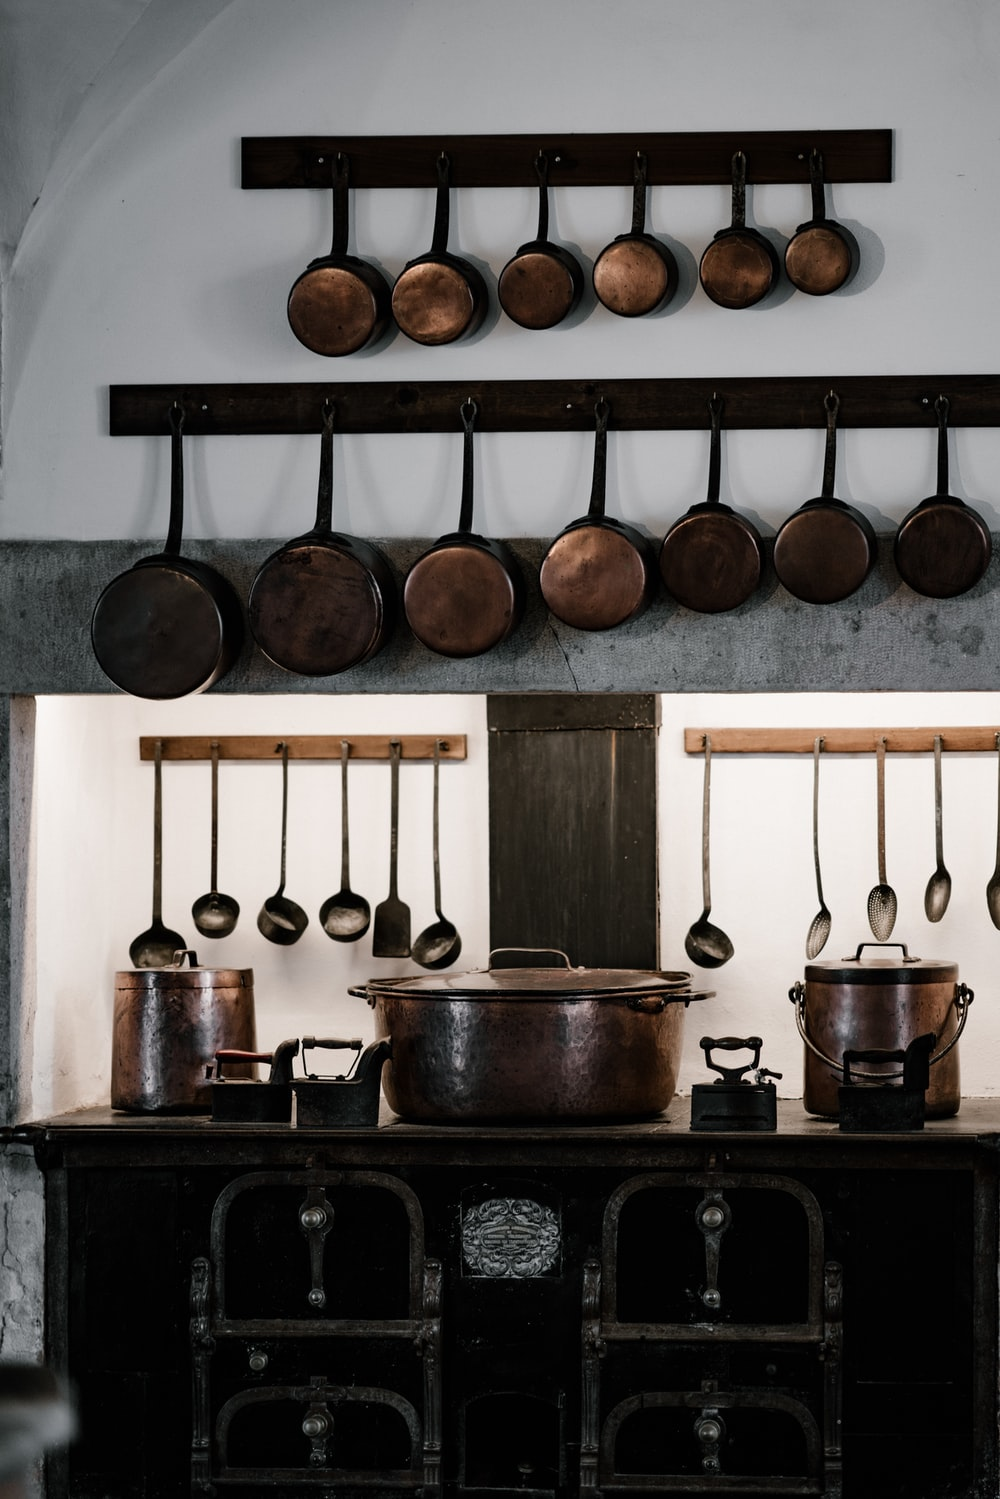 assorted cooking pots and pans hangs over black cast iron stove